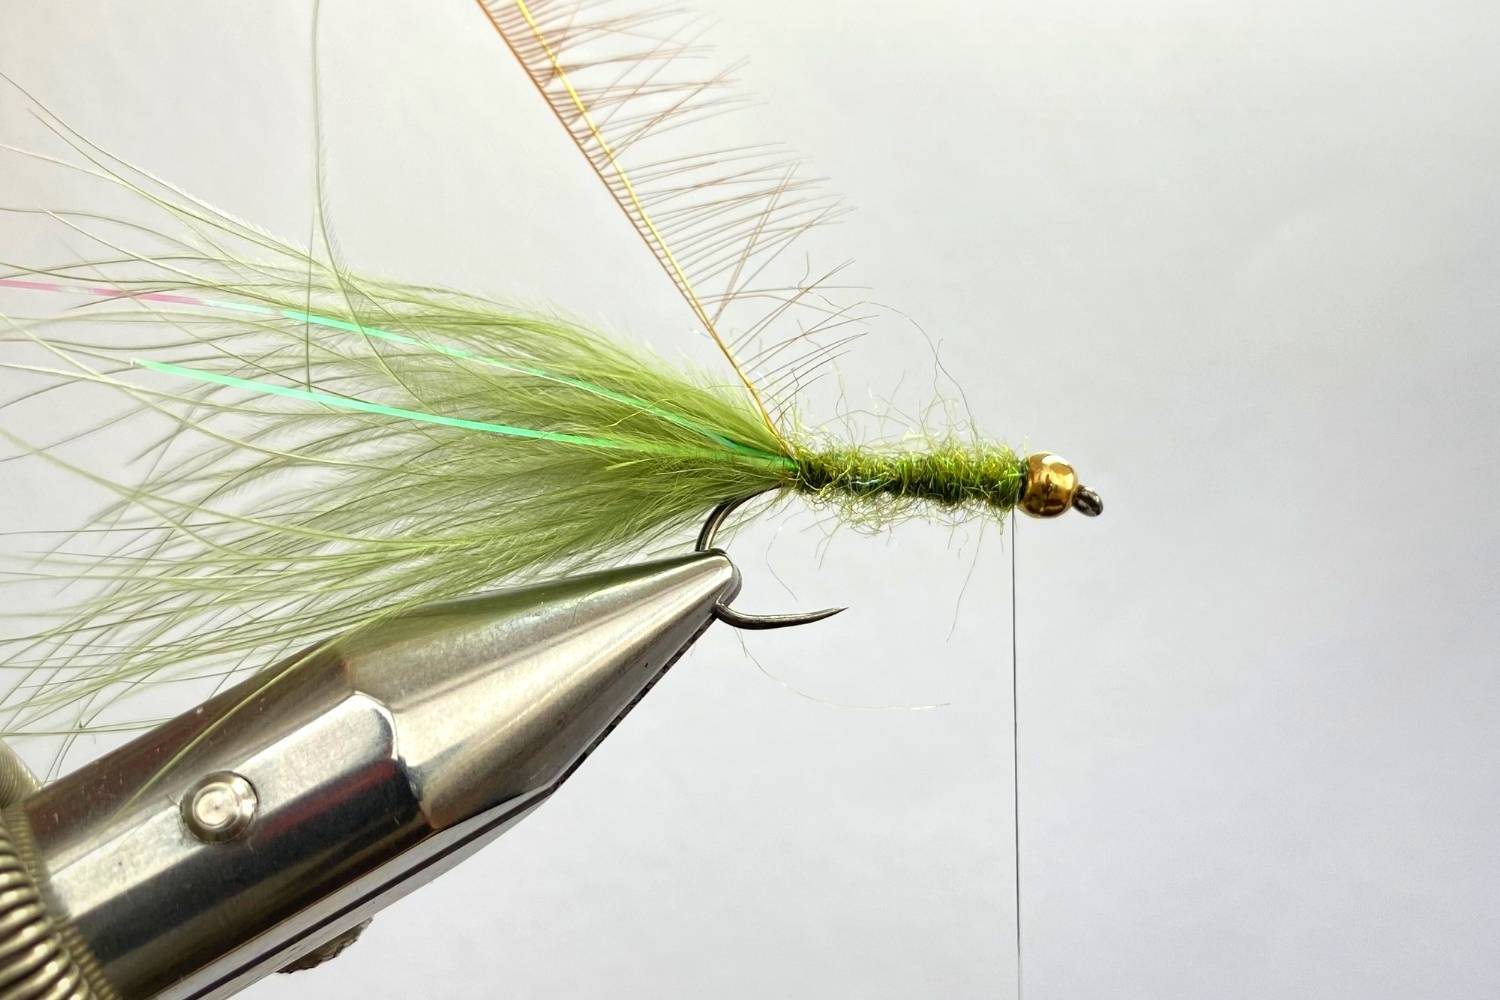 How to Tie The Wooly Bugger Fly step 10